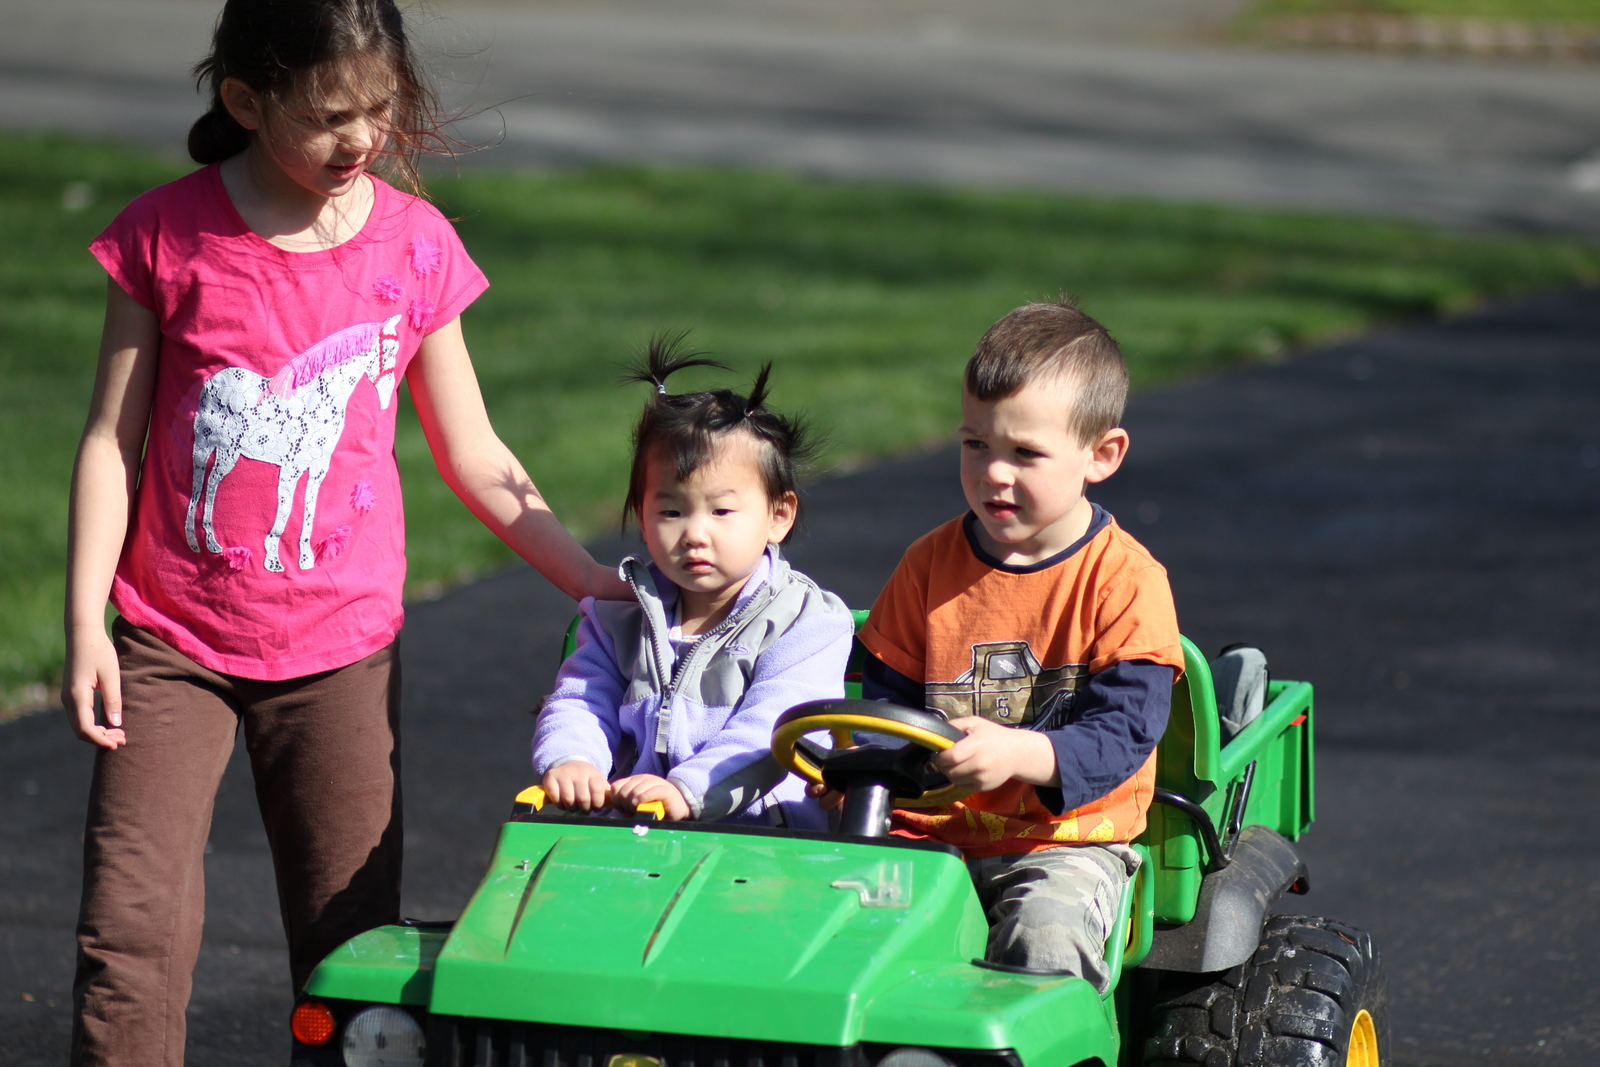 She loves riding in the gator with her brothers!